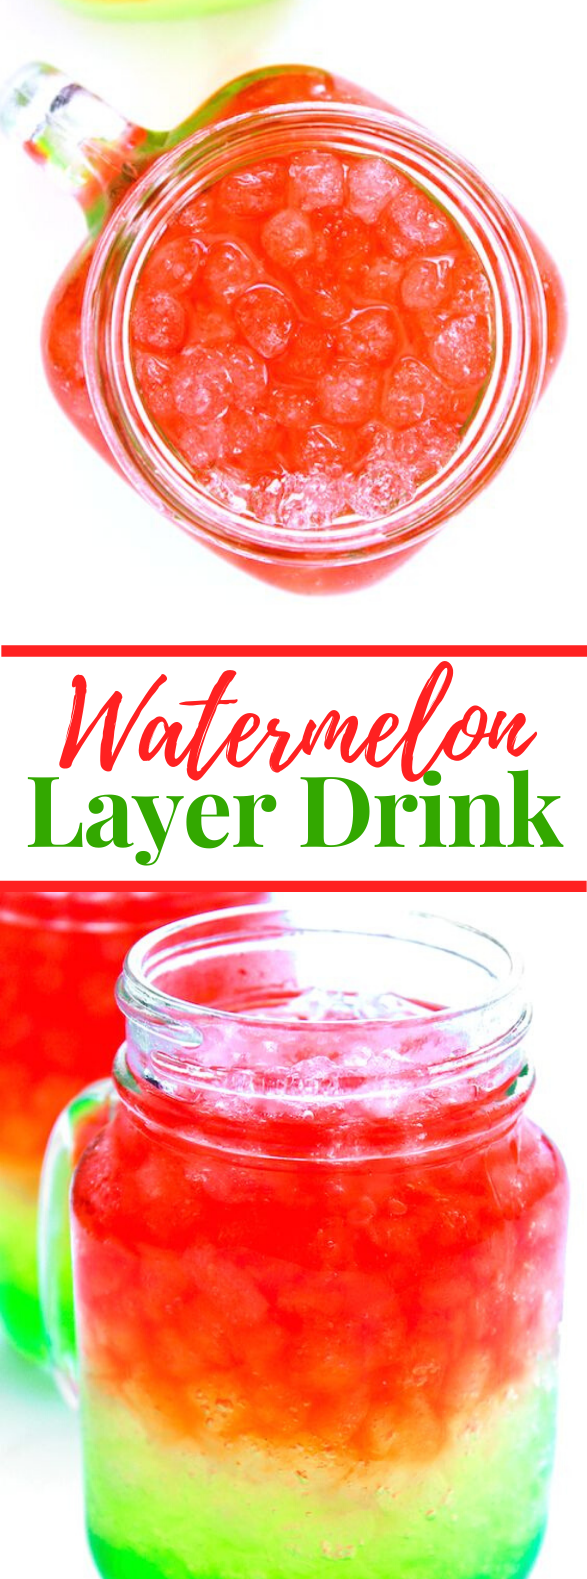 WATERMELON LAYER DRINK #drinks #summertime